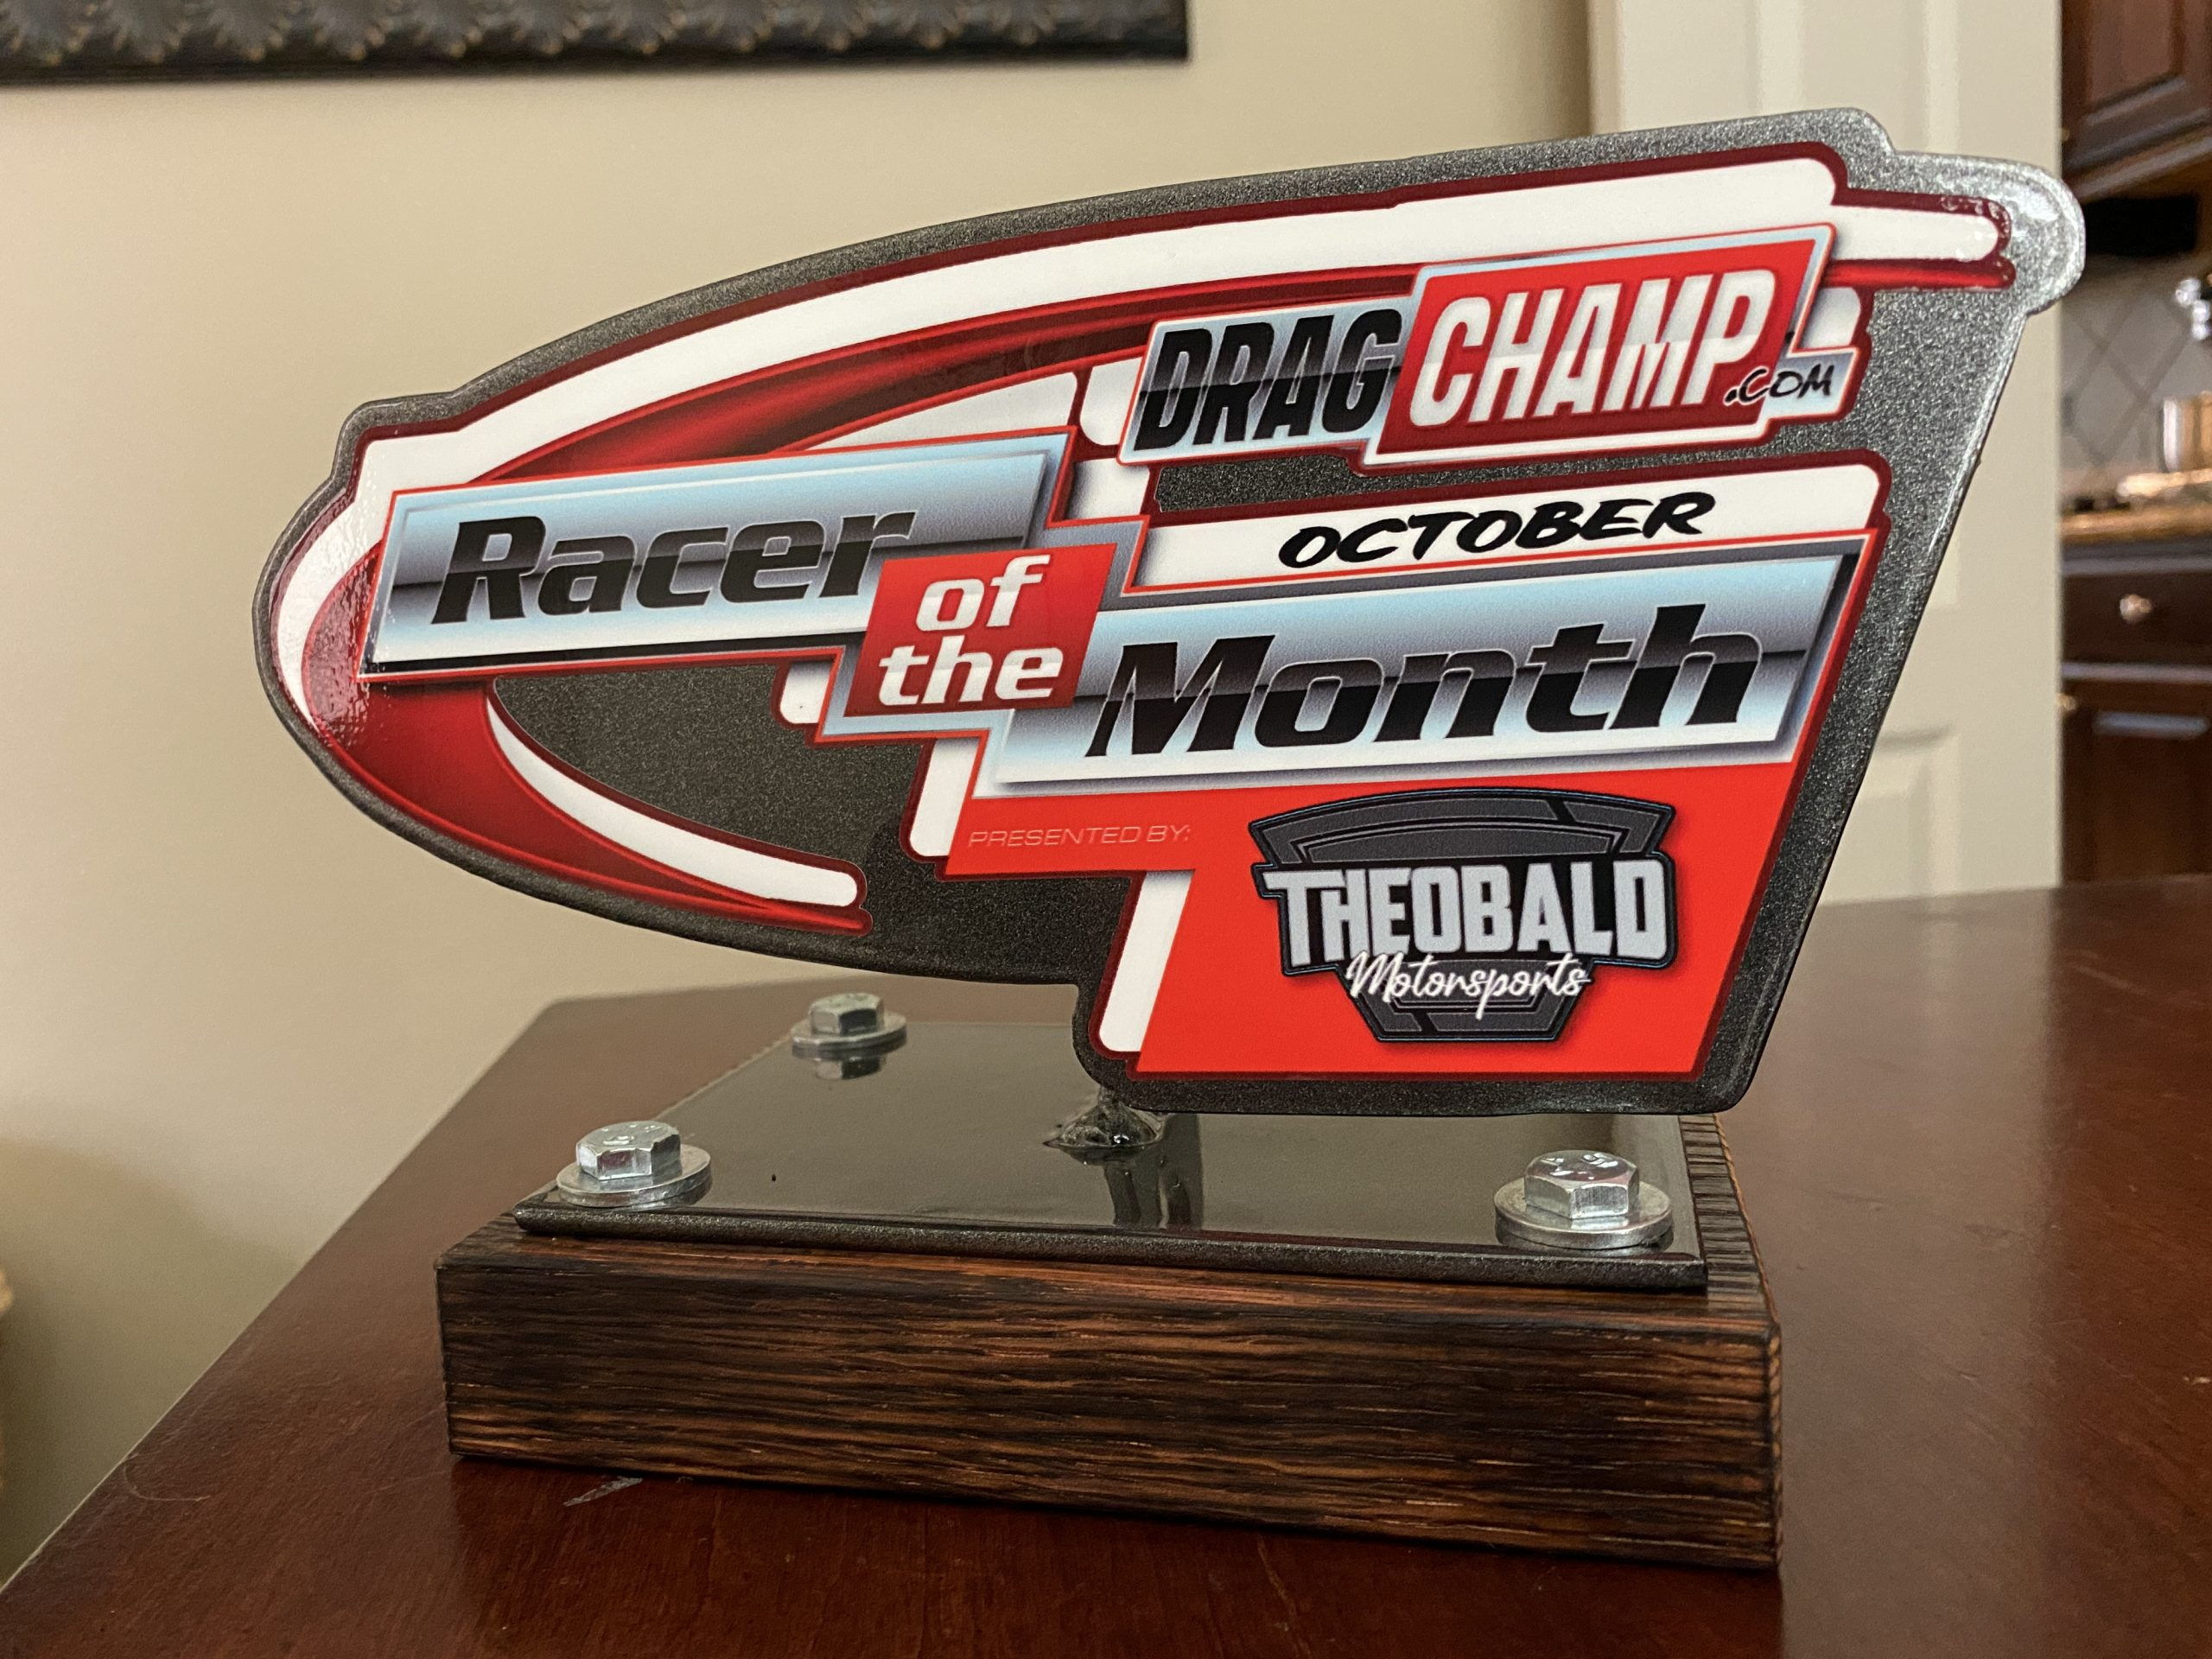 october racer of the month trophy